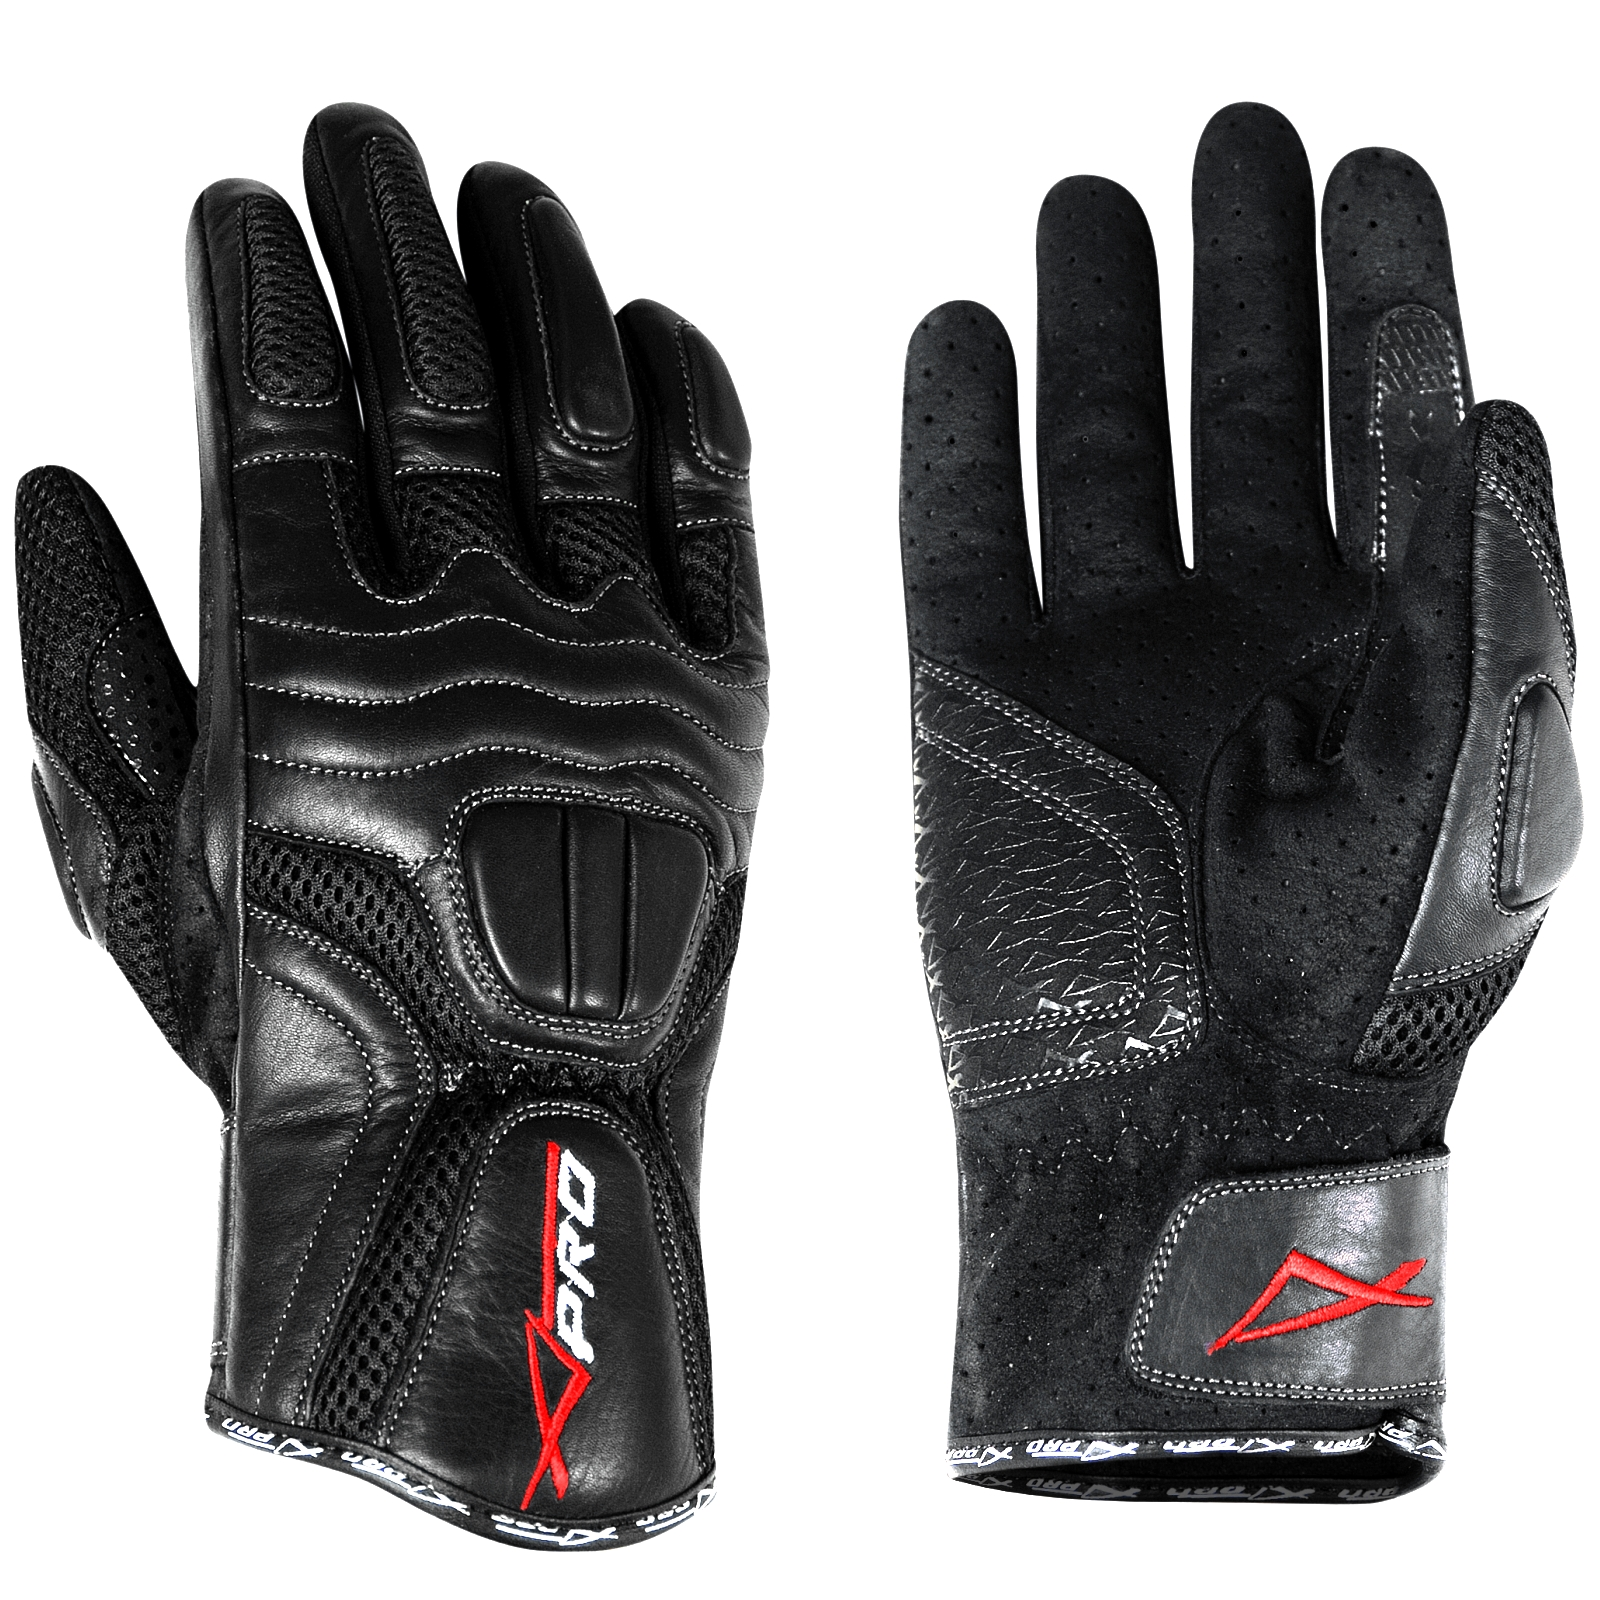 Sport Gloves Opskins: Textile Leather City Touring Lined Motorcycle Apparel